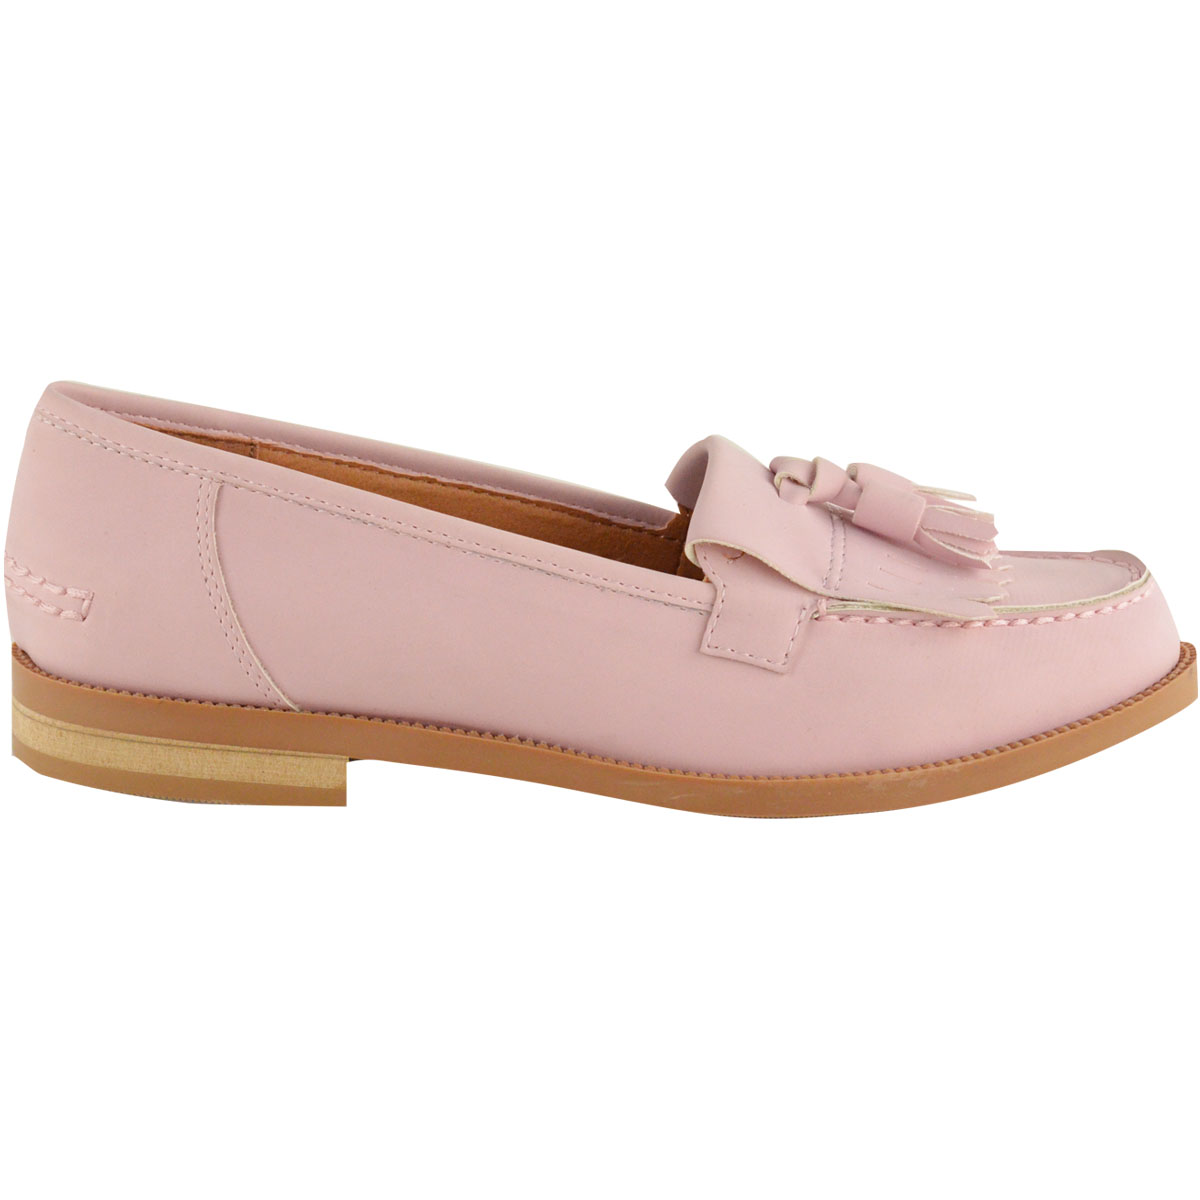 Womens Las Office Flat Casual Patent Faux Leather